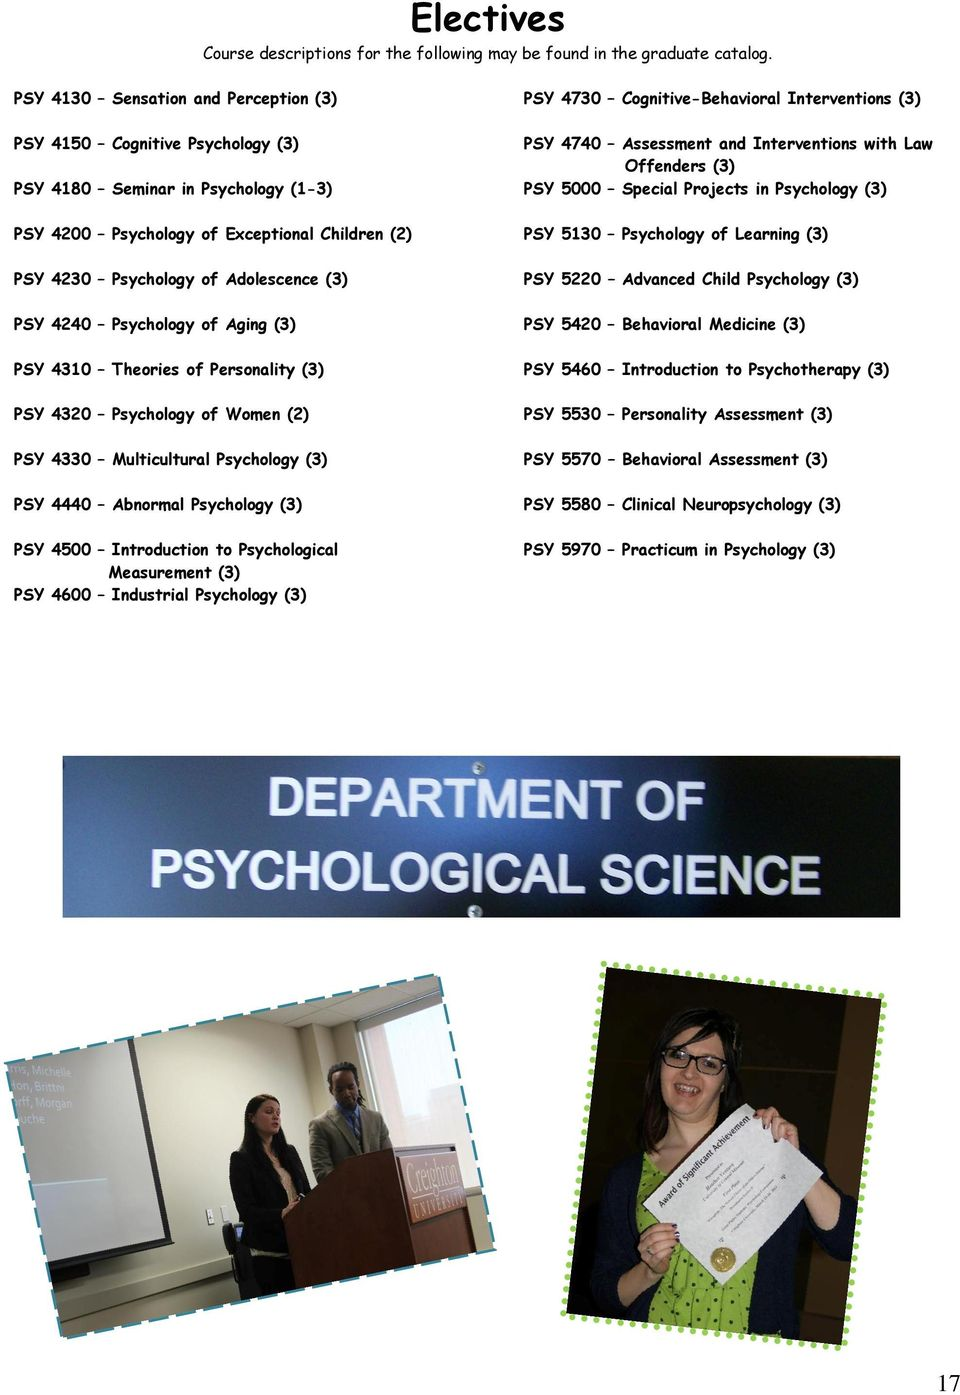 in Psychology (1-3) PSY 5000 Special Projects in Psychology (3) PSY 4200 Psychology of Exceptional Children (2) PSY 5130 Psychology of Learning (3) PSY 4230 Psychology of Adolescence (3) PSY 5220